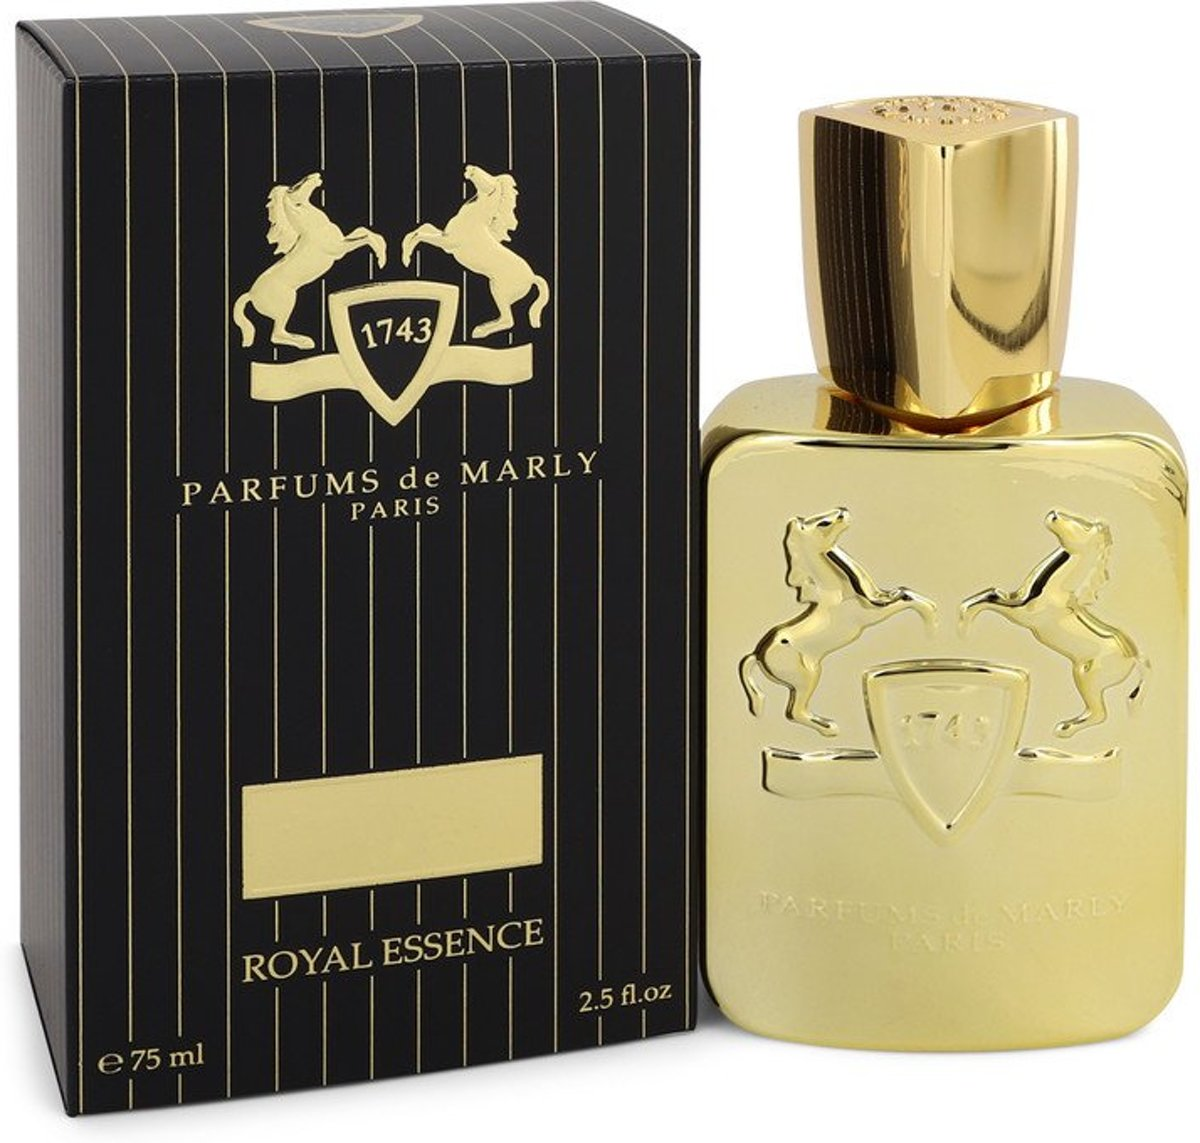 Parfums De Marly Godolphin Eau De Parfum 75Ml